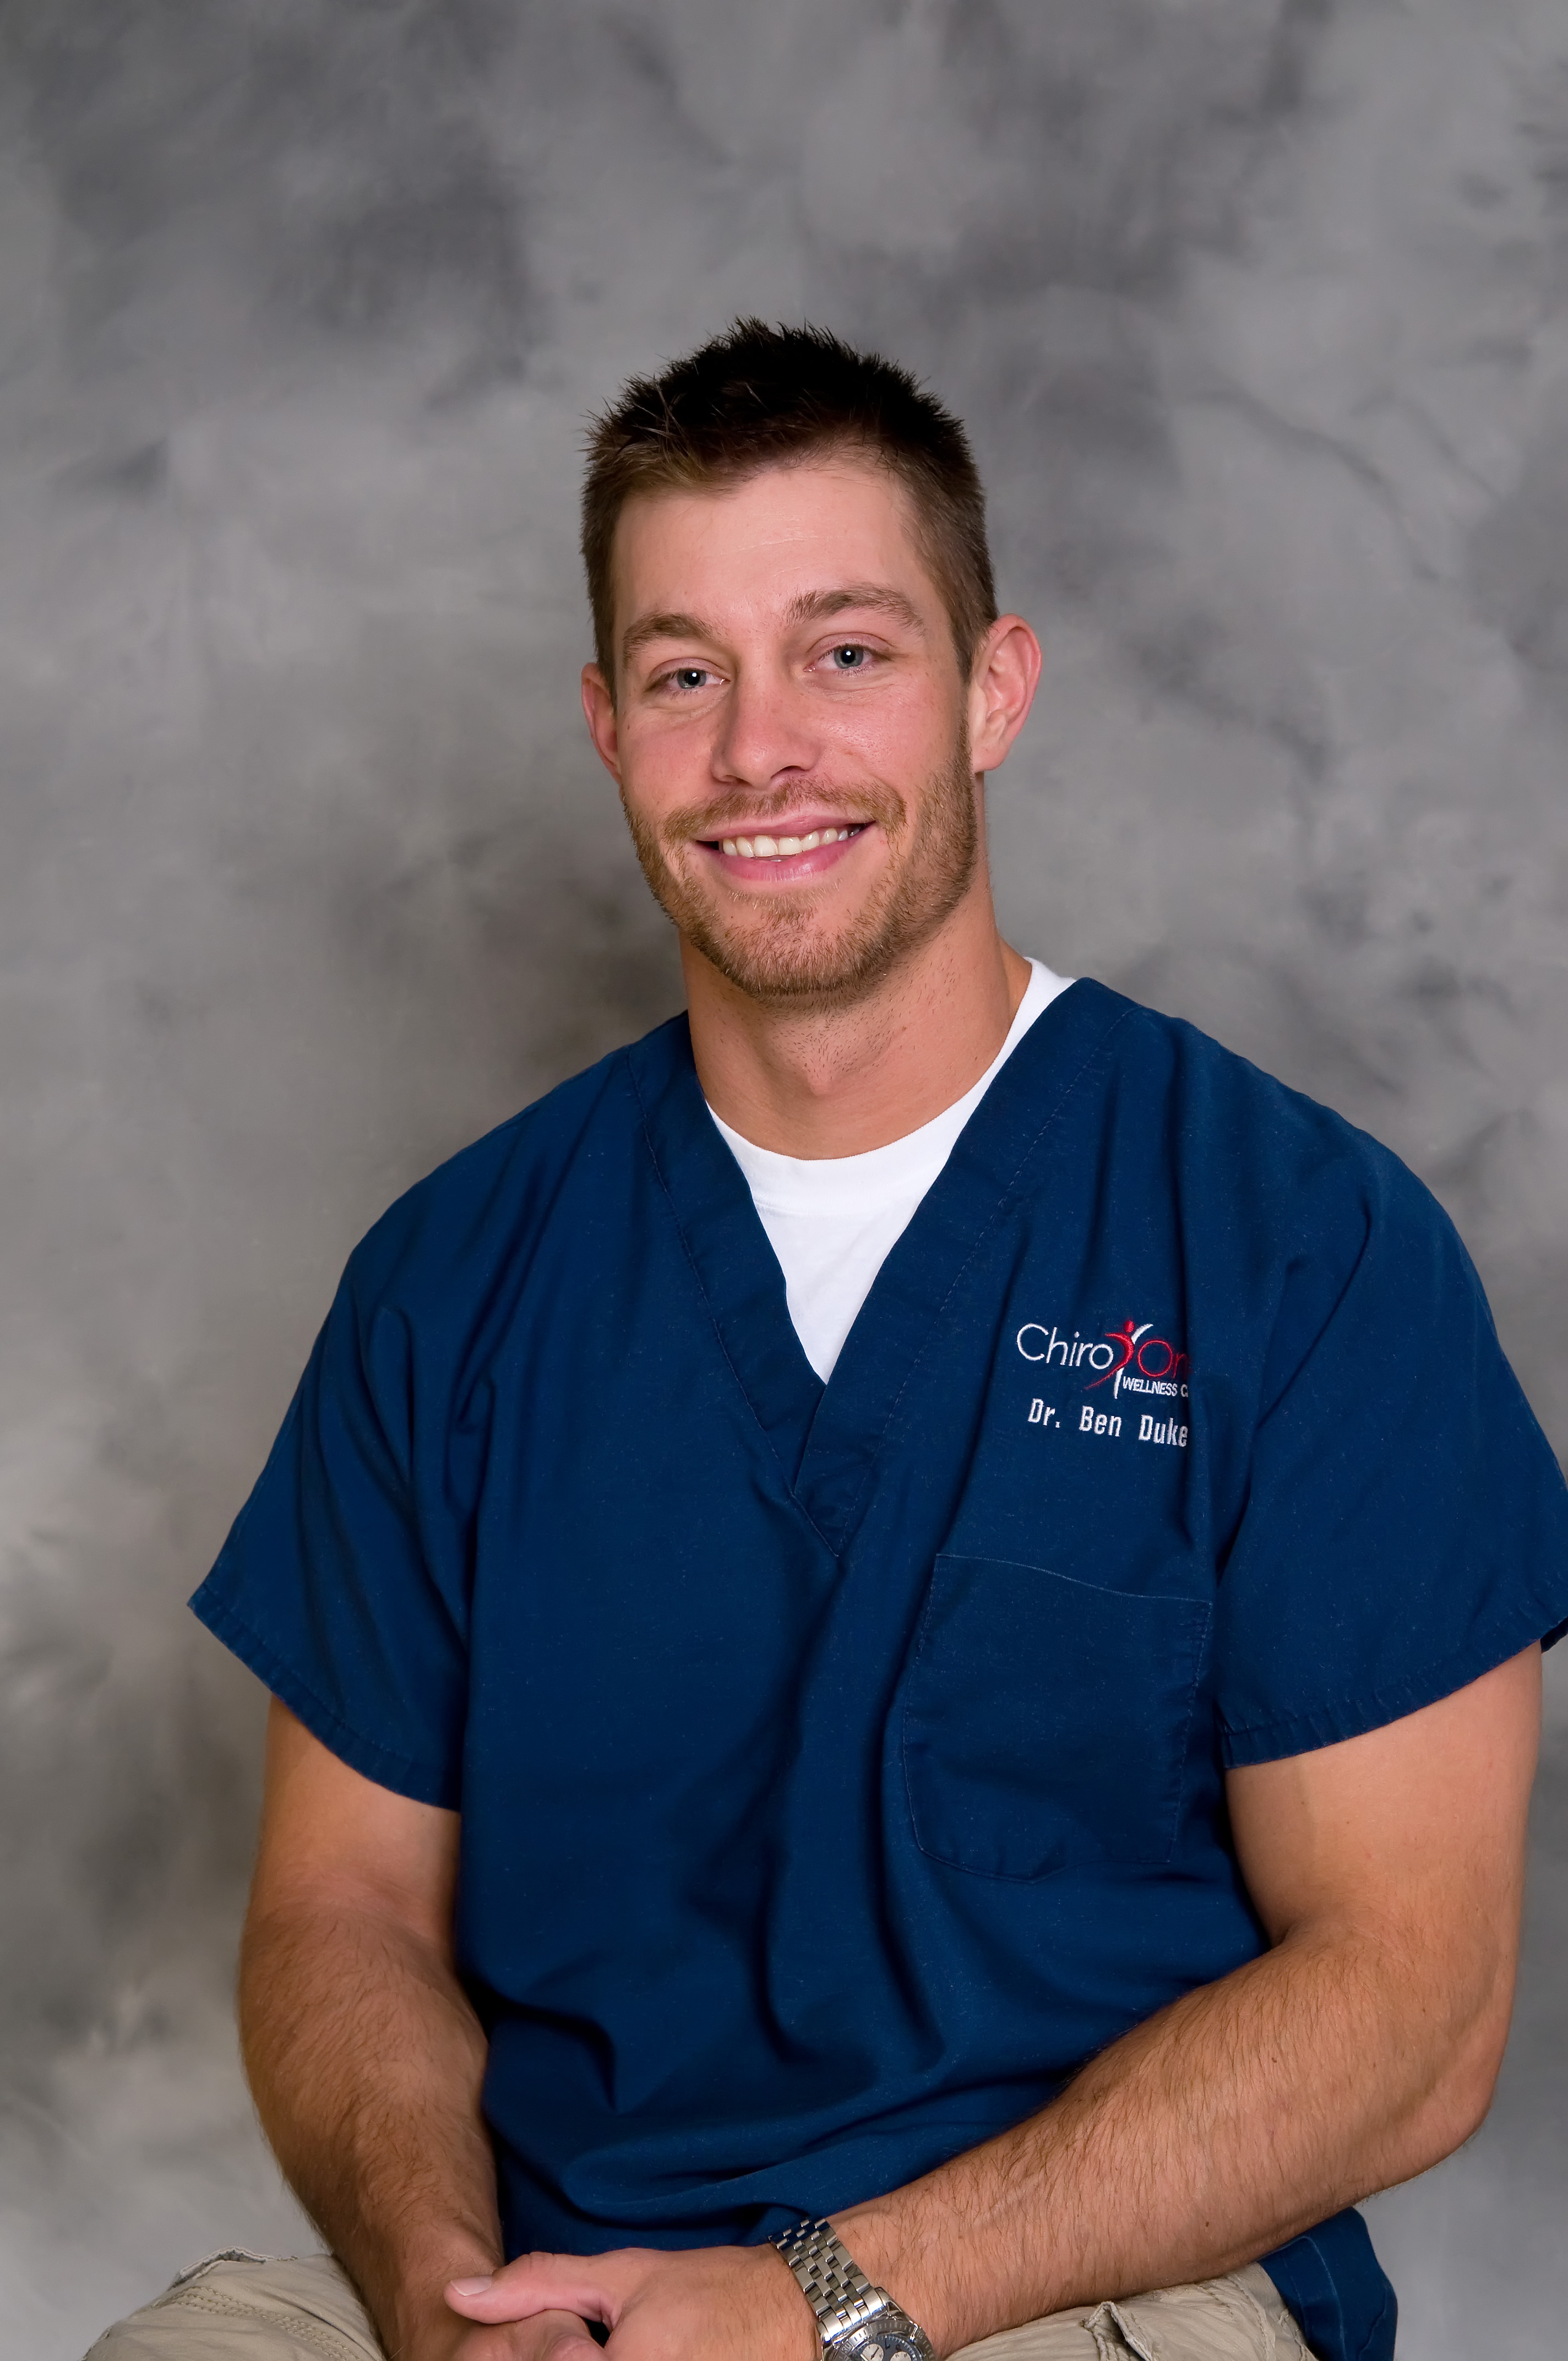 Dr. Ben Duke, D.C. Chiropractic Director Chiro One Wellness Center of Mokena